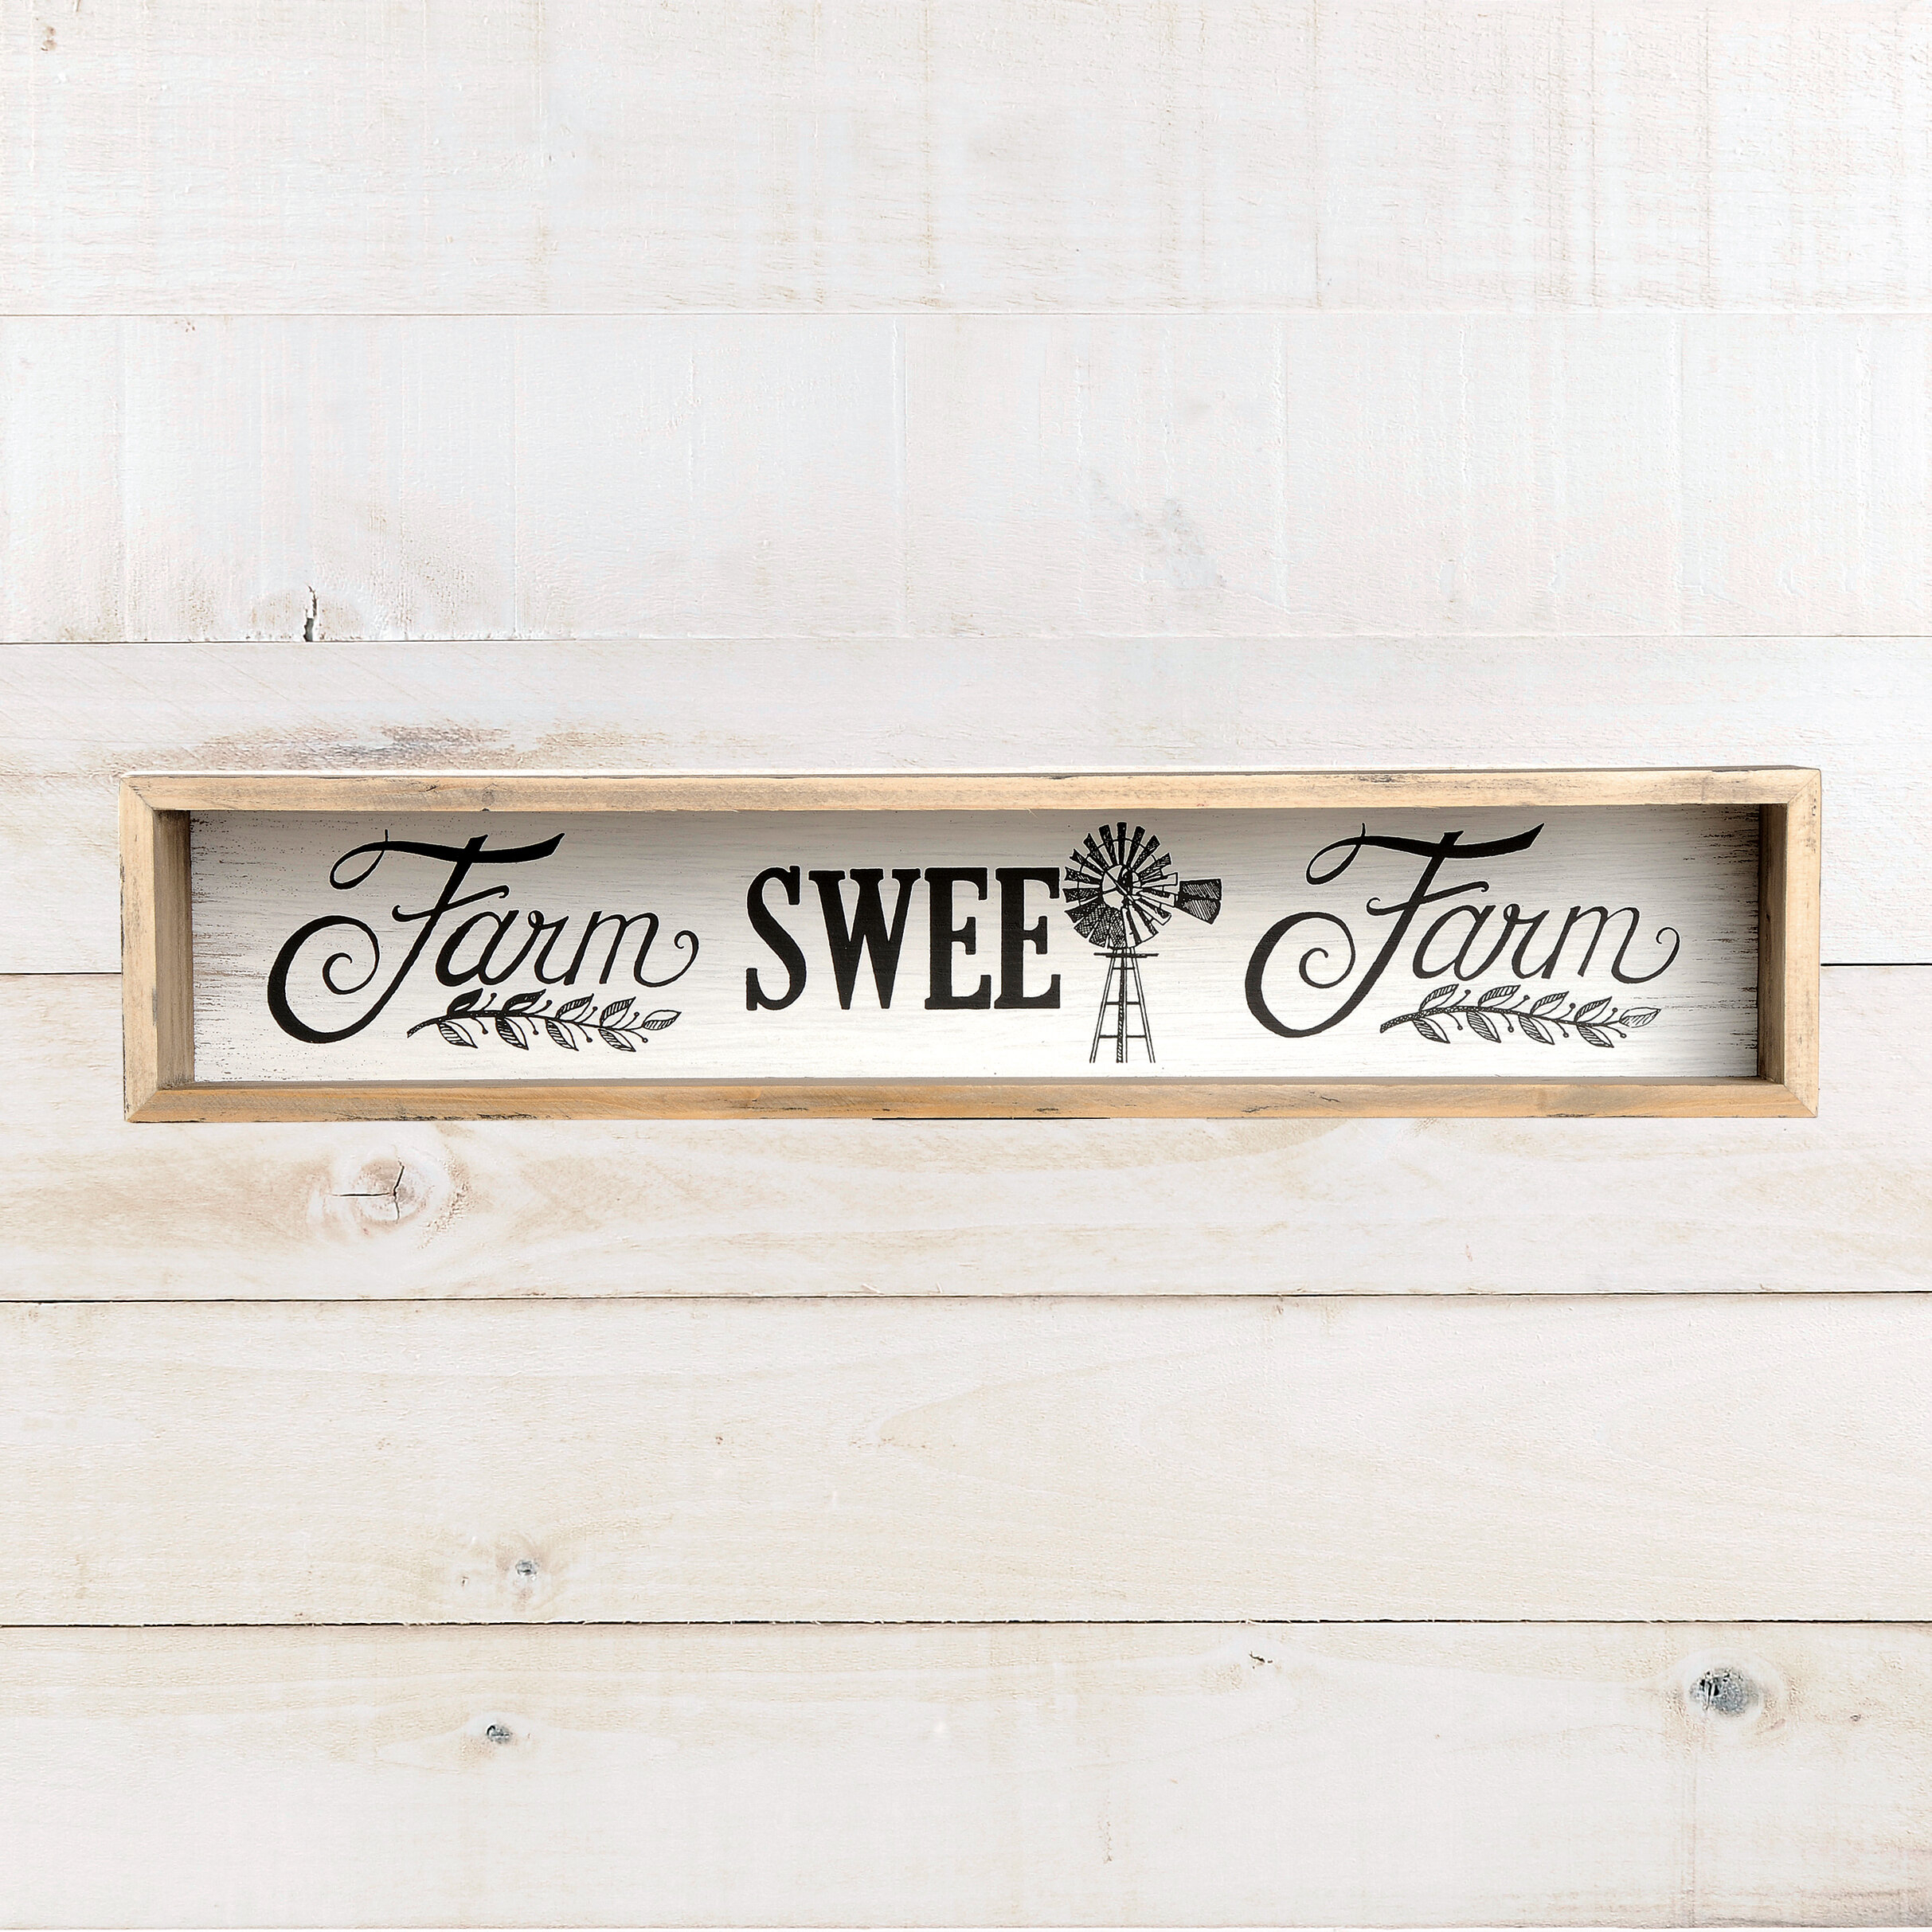 Home Sweet Home Wall Decor   Wayfair With Laser Engraved Home Sweet Home Wall Decor (View 18 of 30)